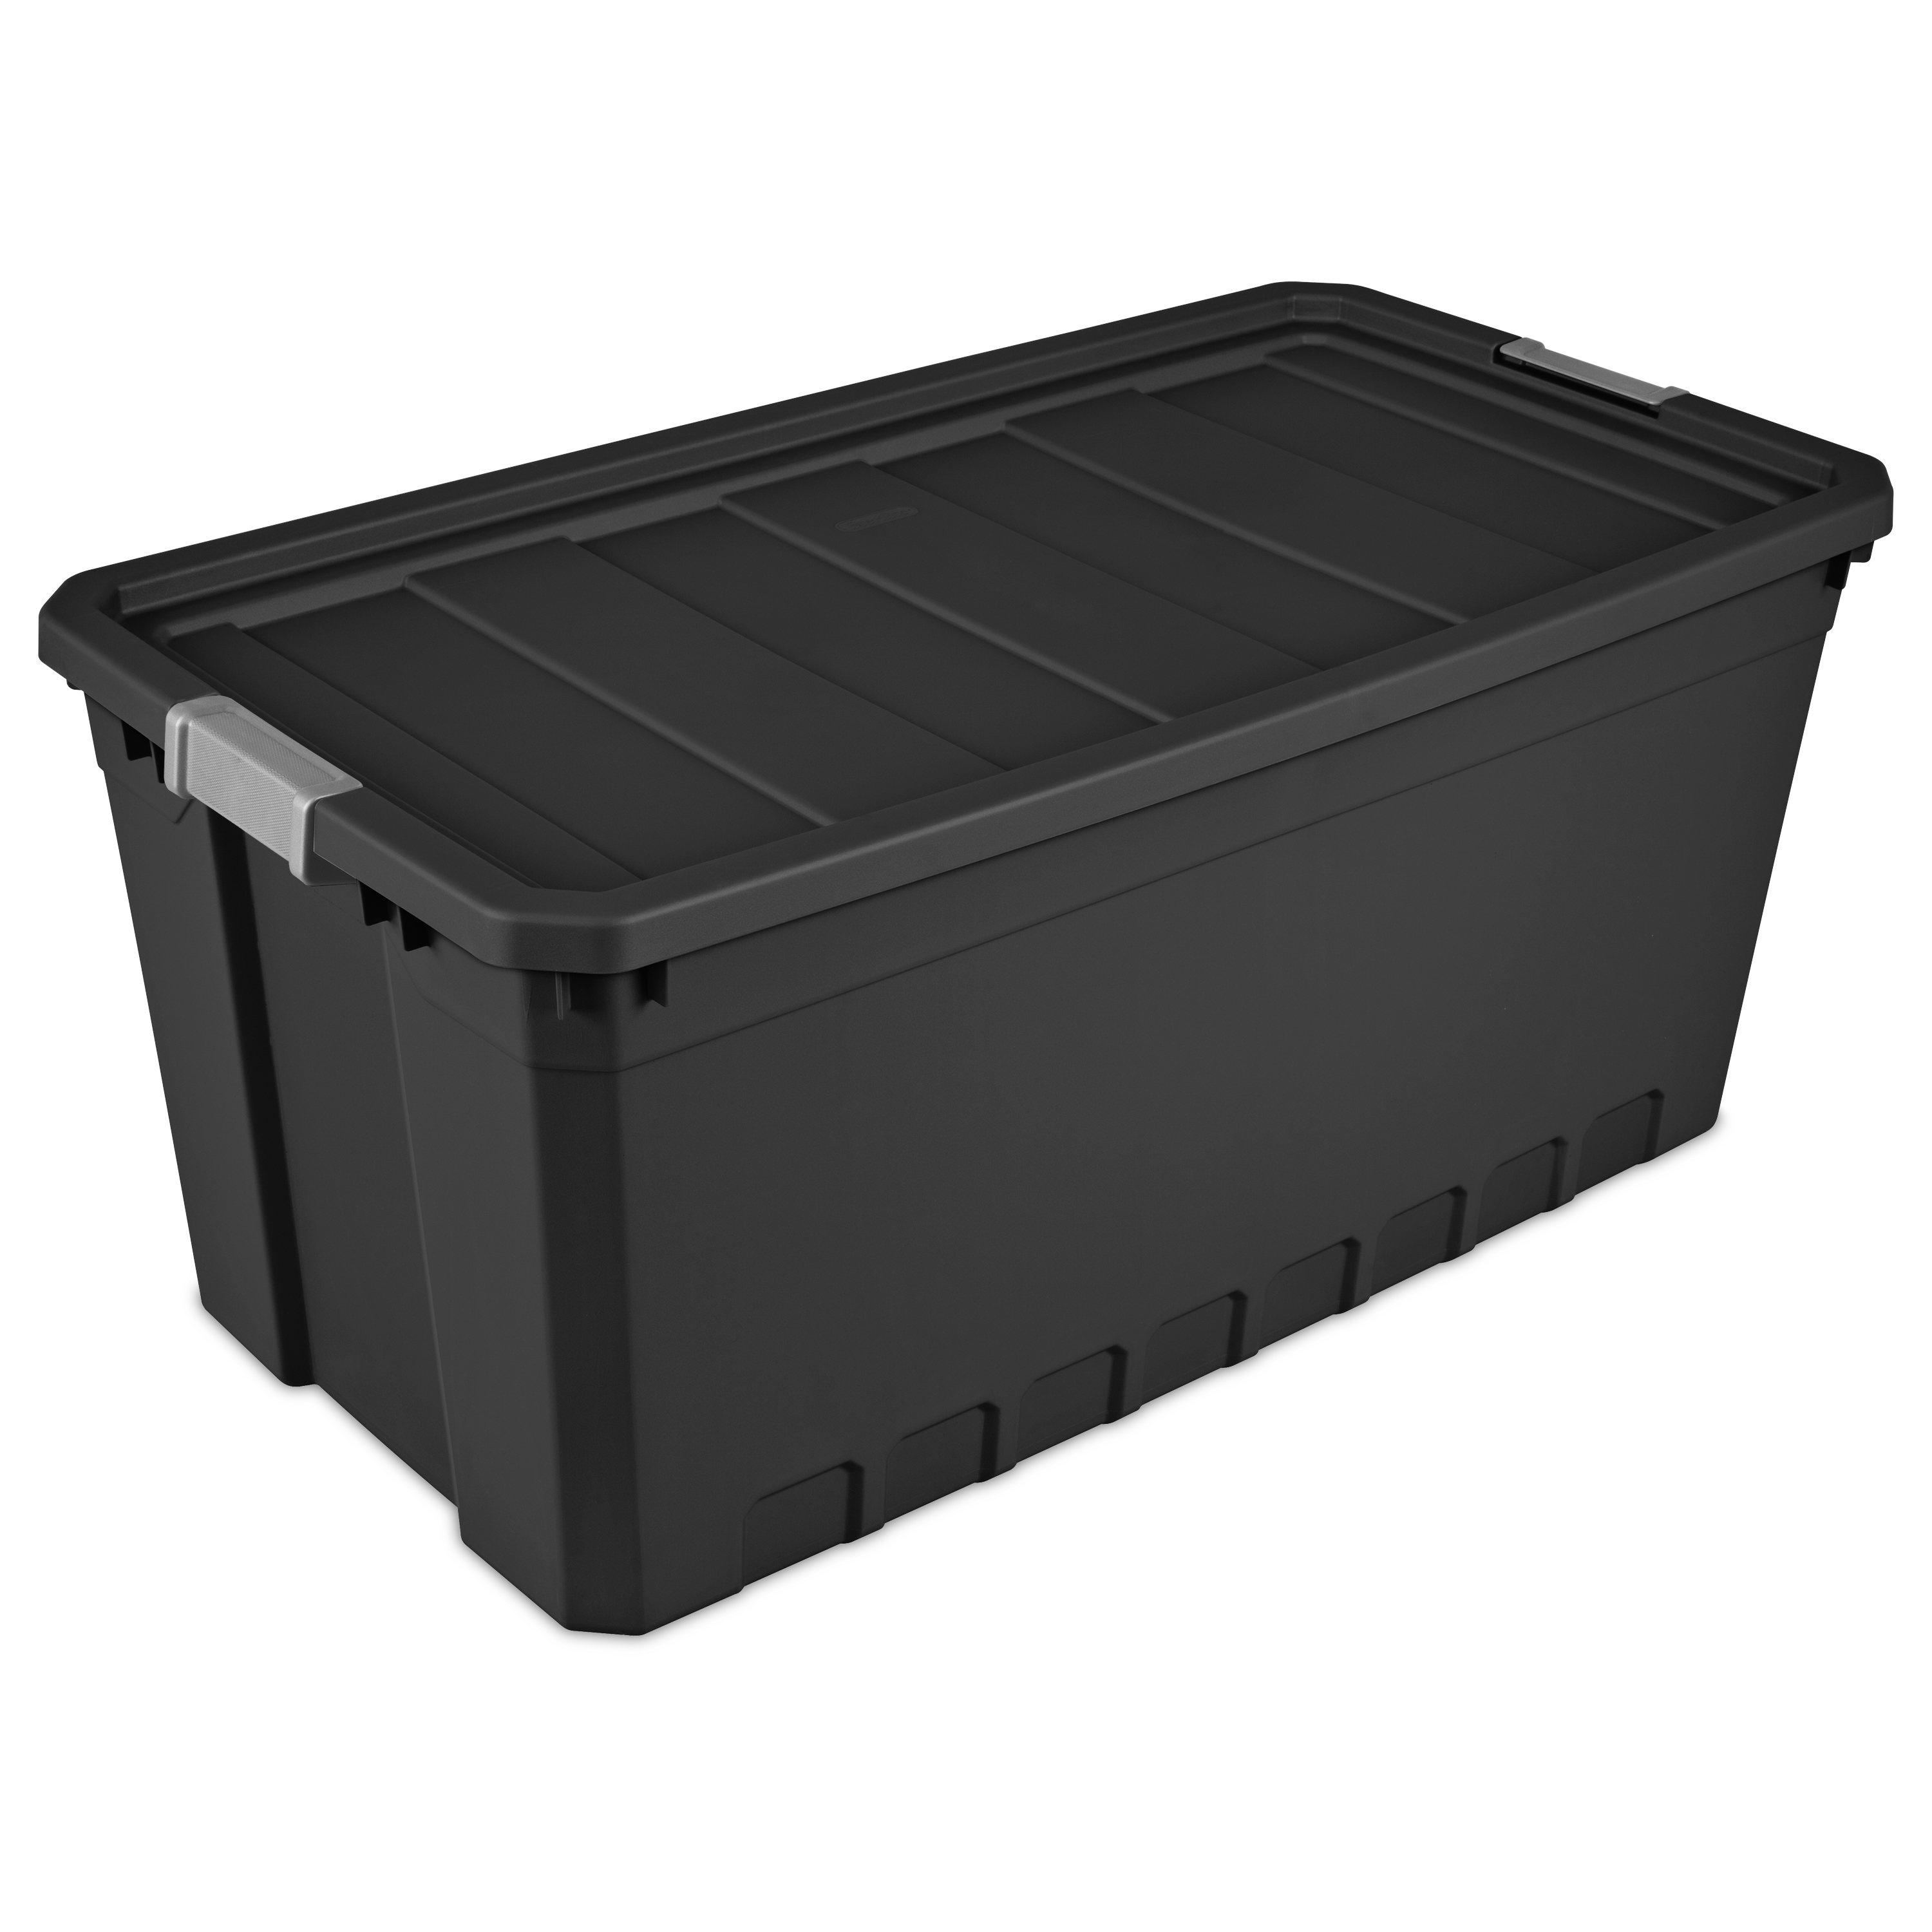 Sterilite, 50 Gal./189 L Stacker Bin, Black (Available in a Case of 3 or Single Unit)